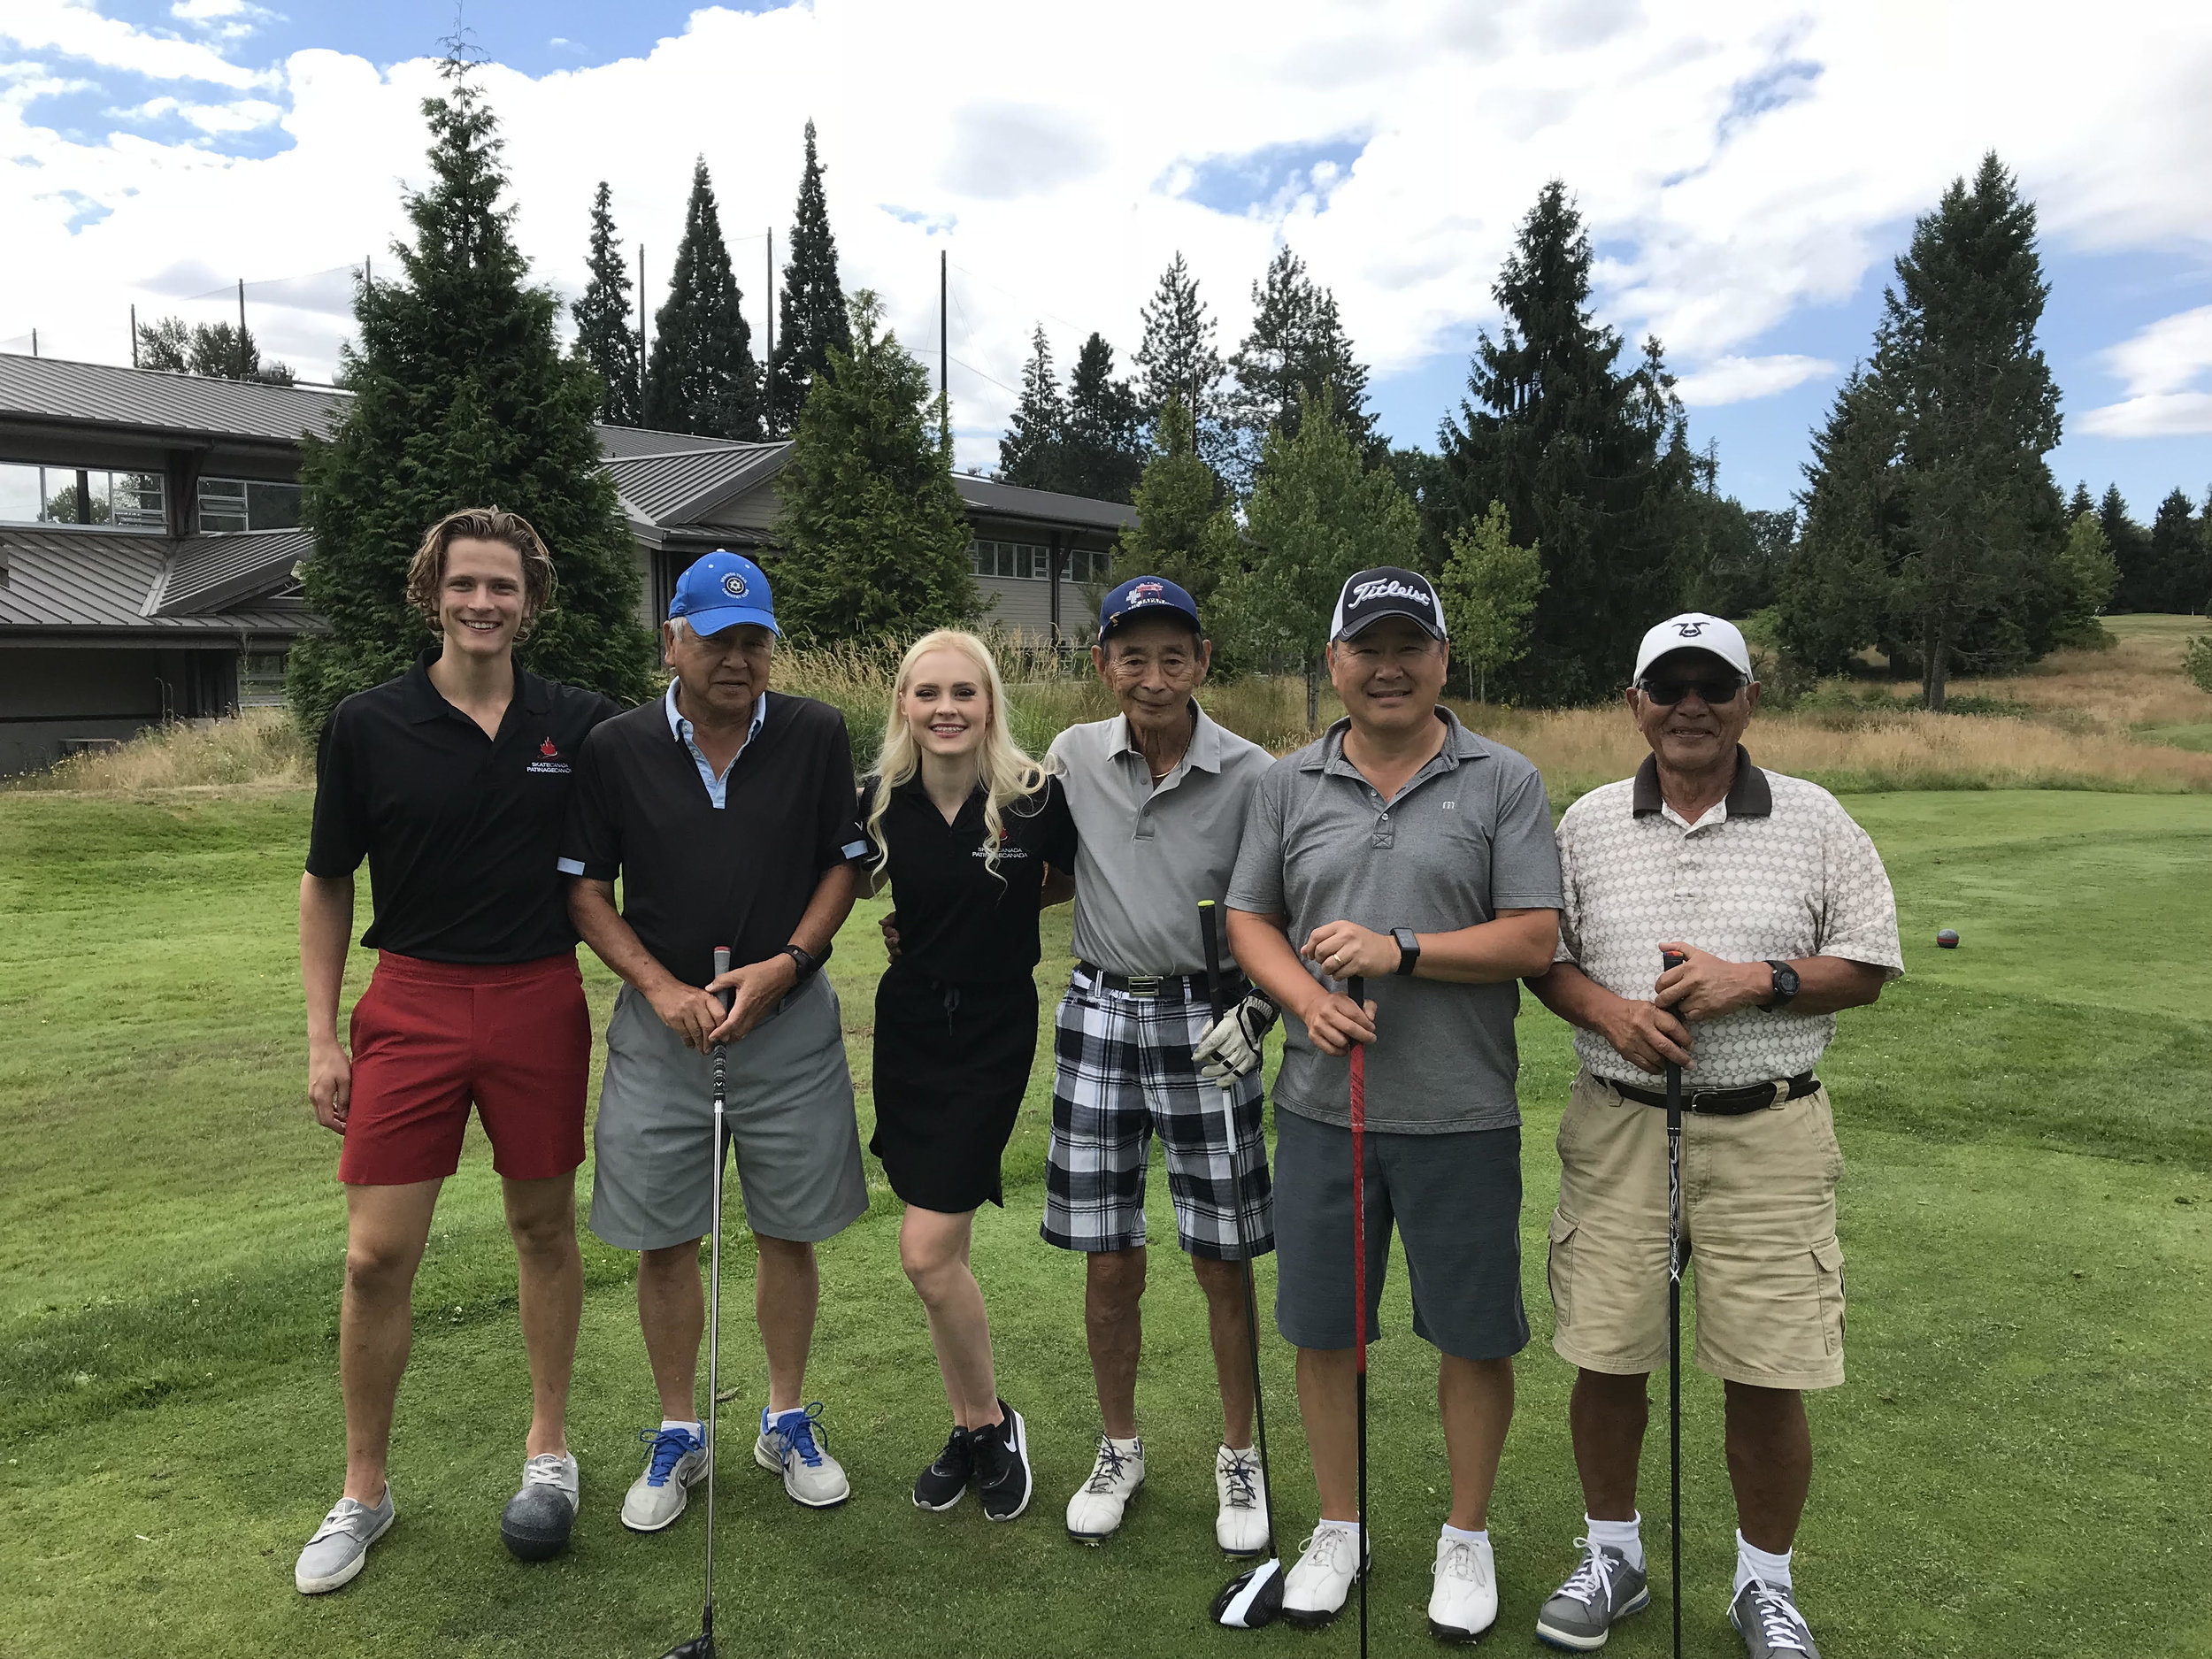 The 2nd Annual VIDA Charity Golf Tournament was held on July 20, 2018.